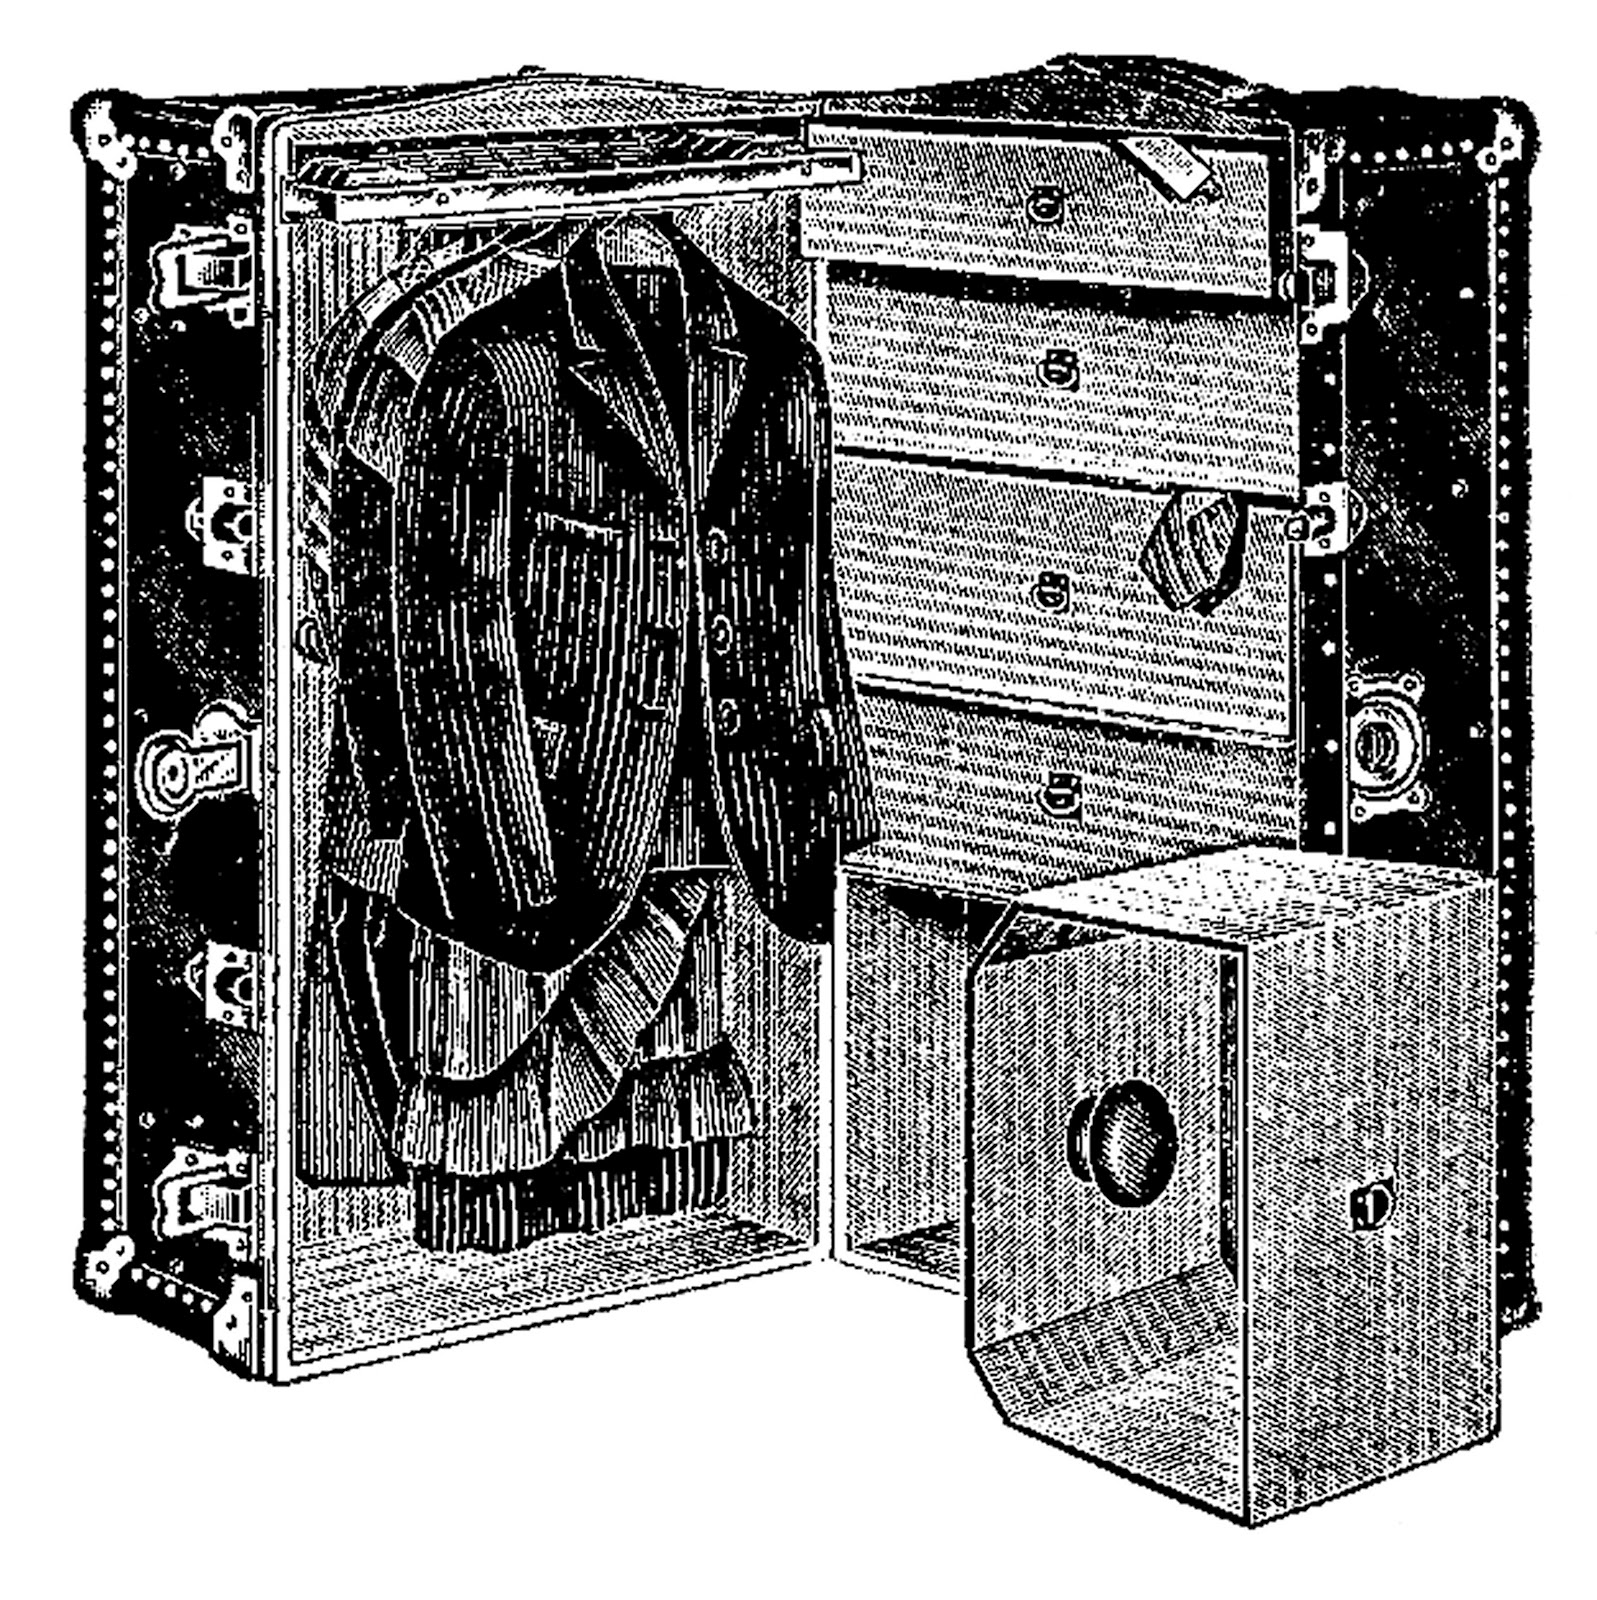 vintage travel clipart black and white - photo #6